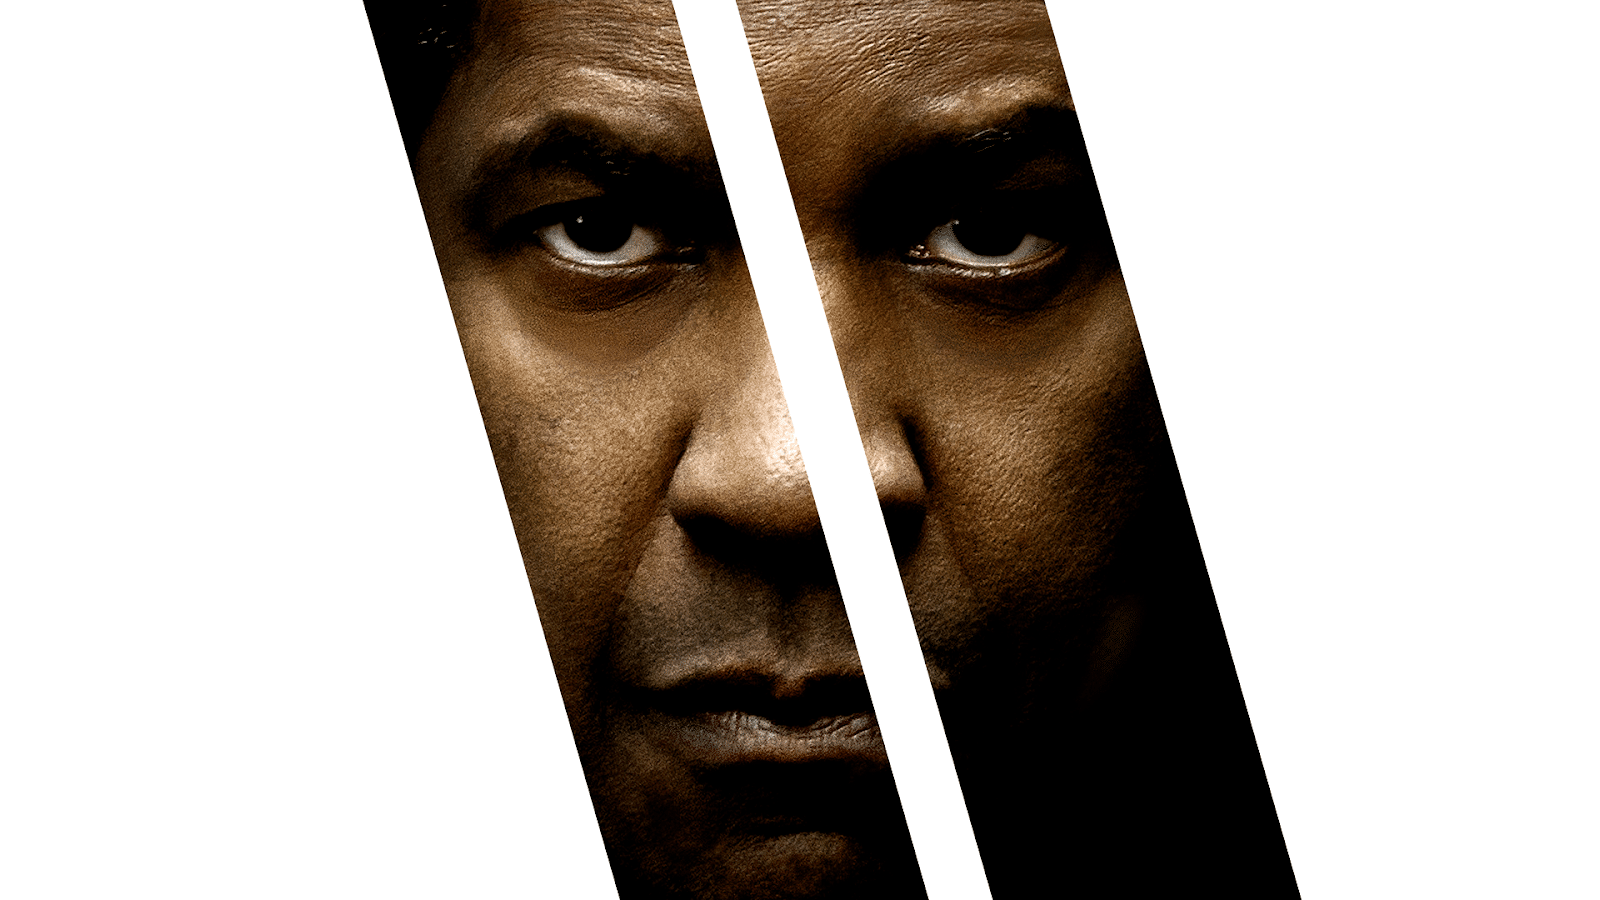 64196-background-The-Equalizer-2-1920x1080-Wallpapers-Full-HD-Backgrounds-2_new1 The Equalizer 2